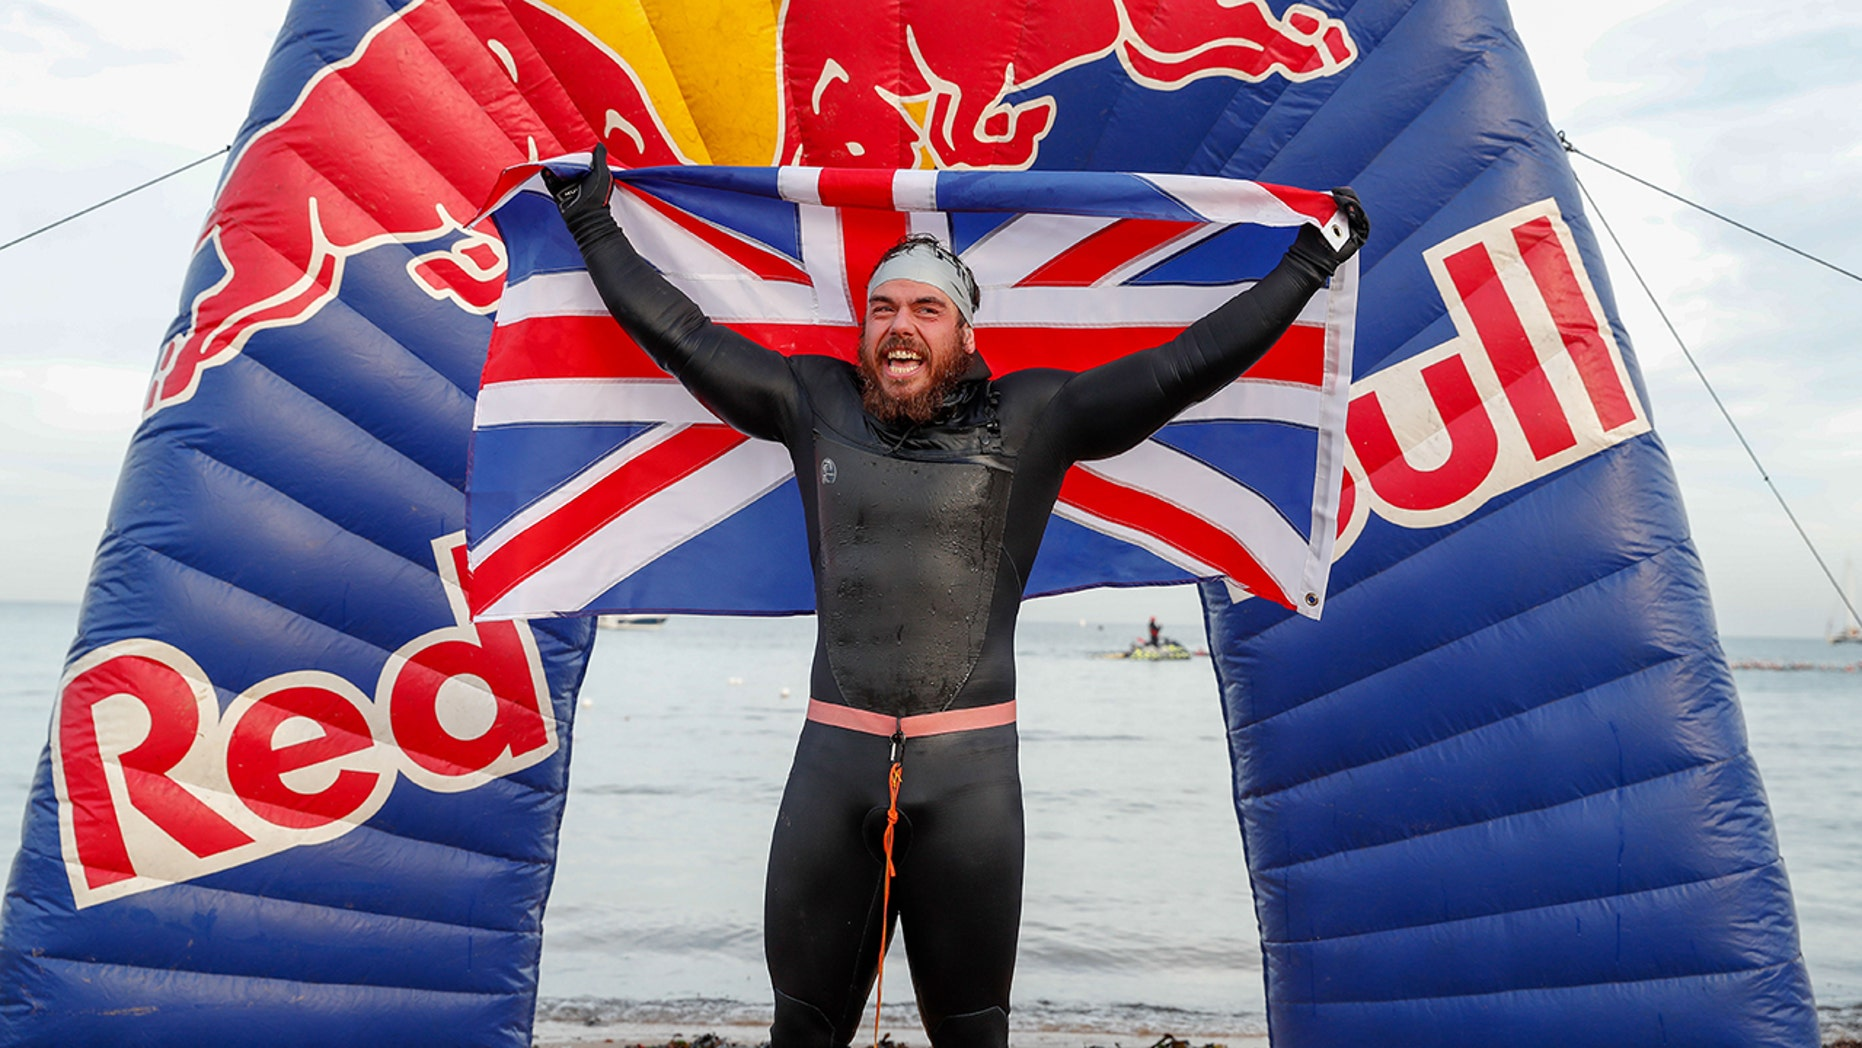 Ross Edgley of England celebrates finishing his 'Great British Swim', a historic nearly 2,000 mile swim around Great Britain. (Photo by Luke Walker/Getty Images for Red Bull)